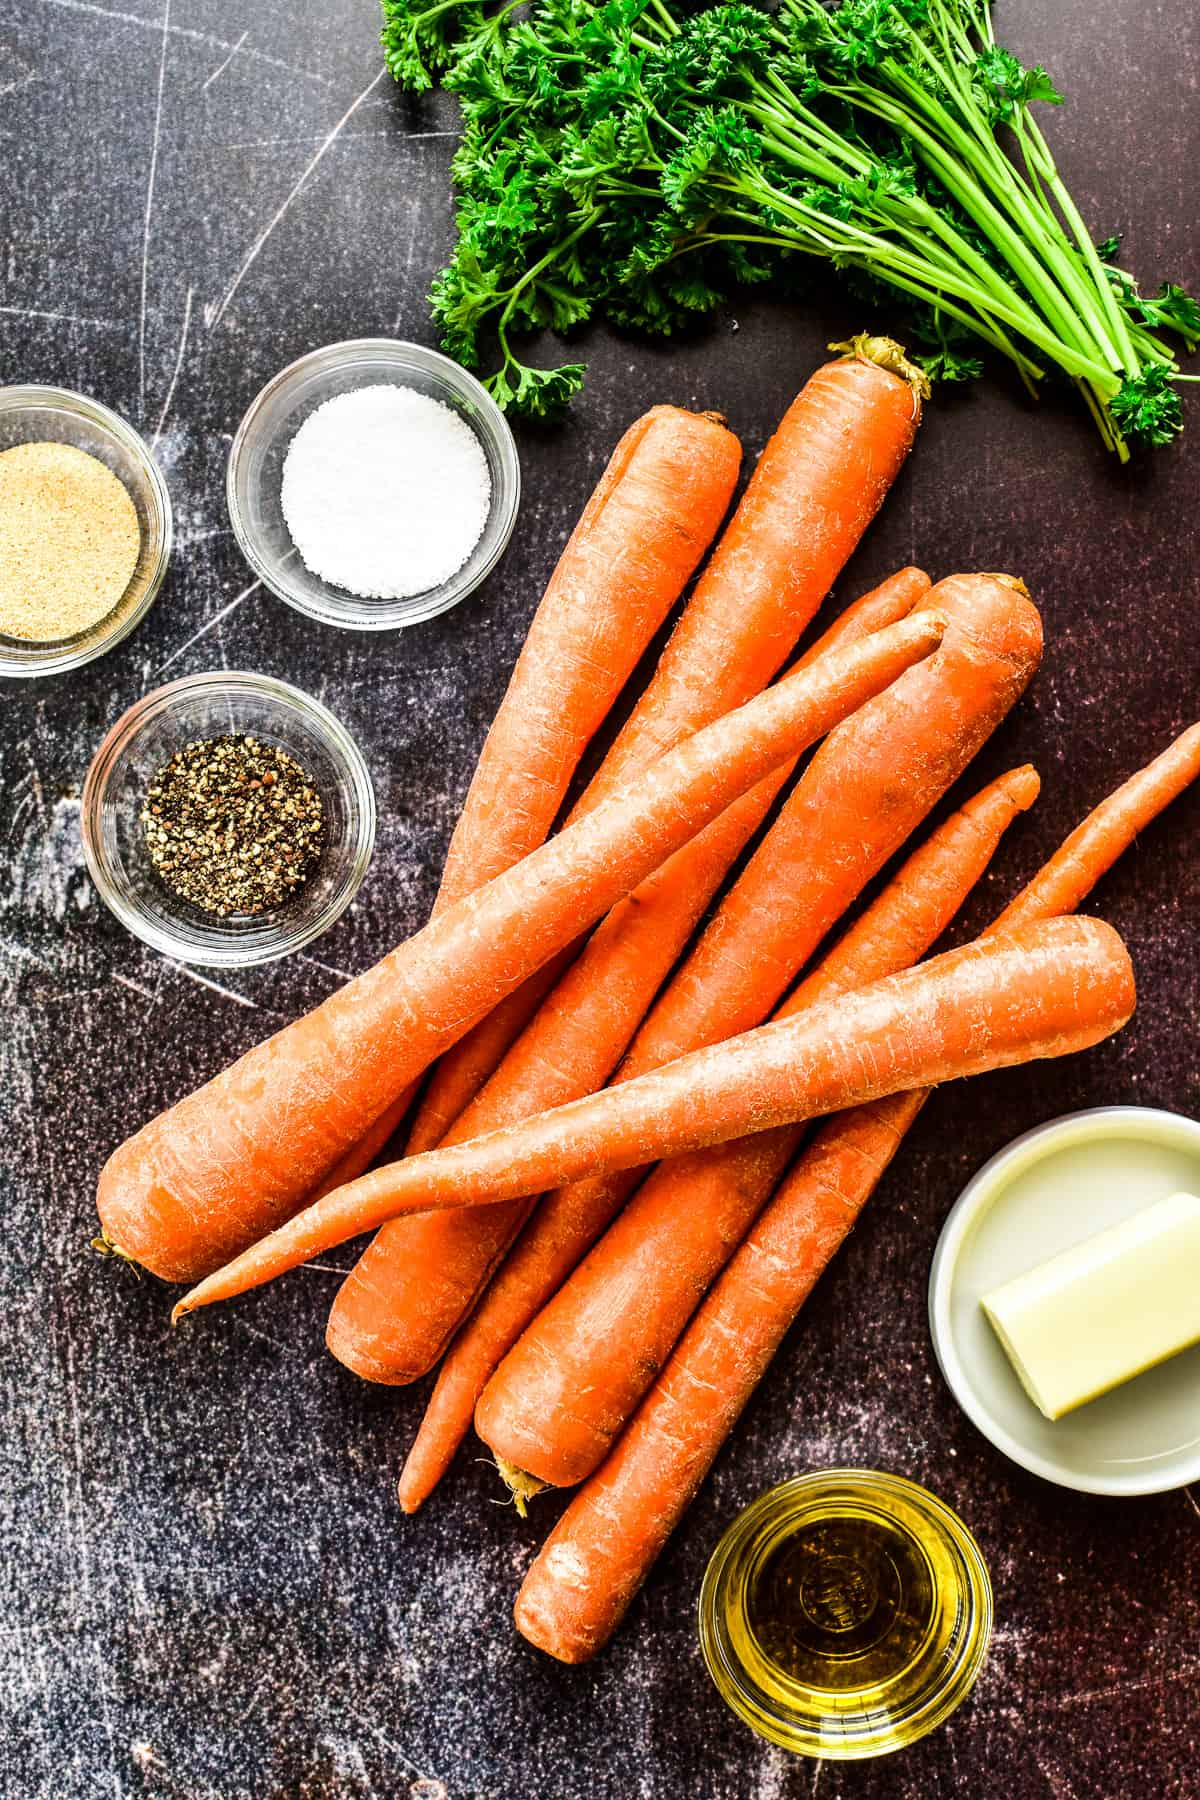 Ingredients for Roasted Carrots